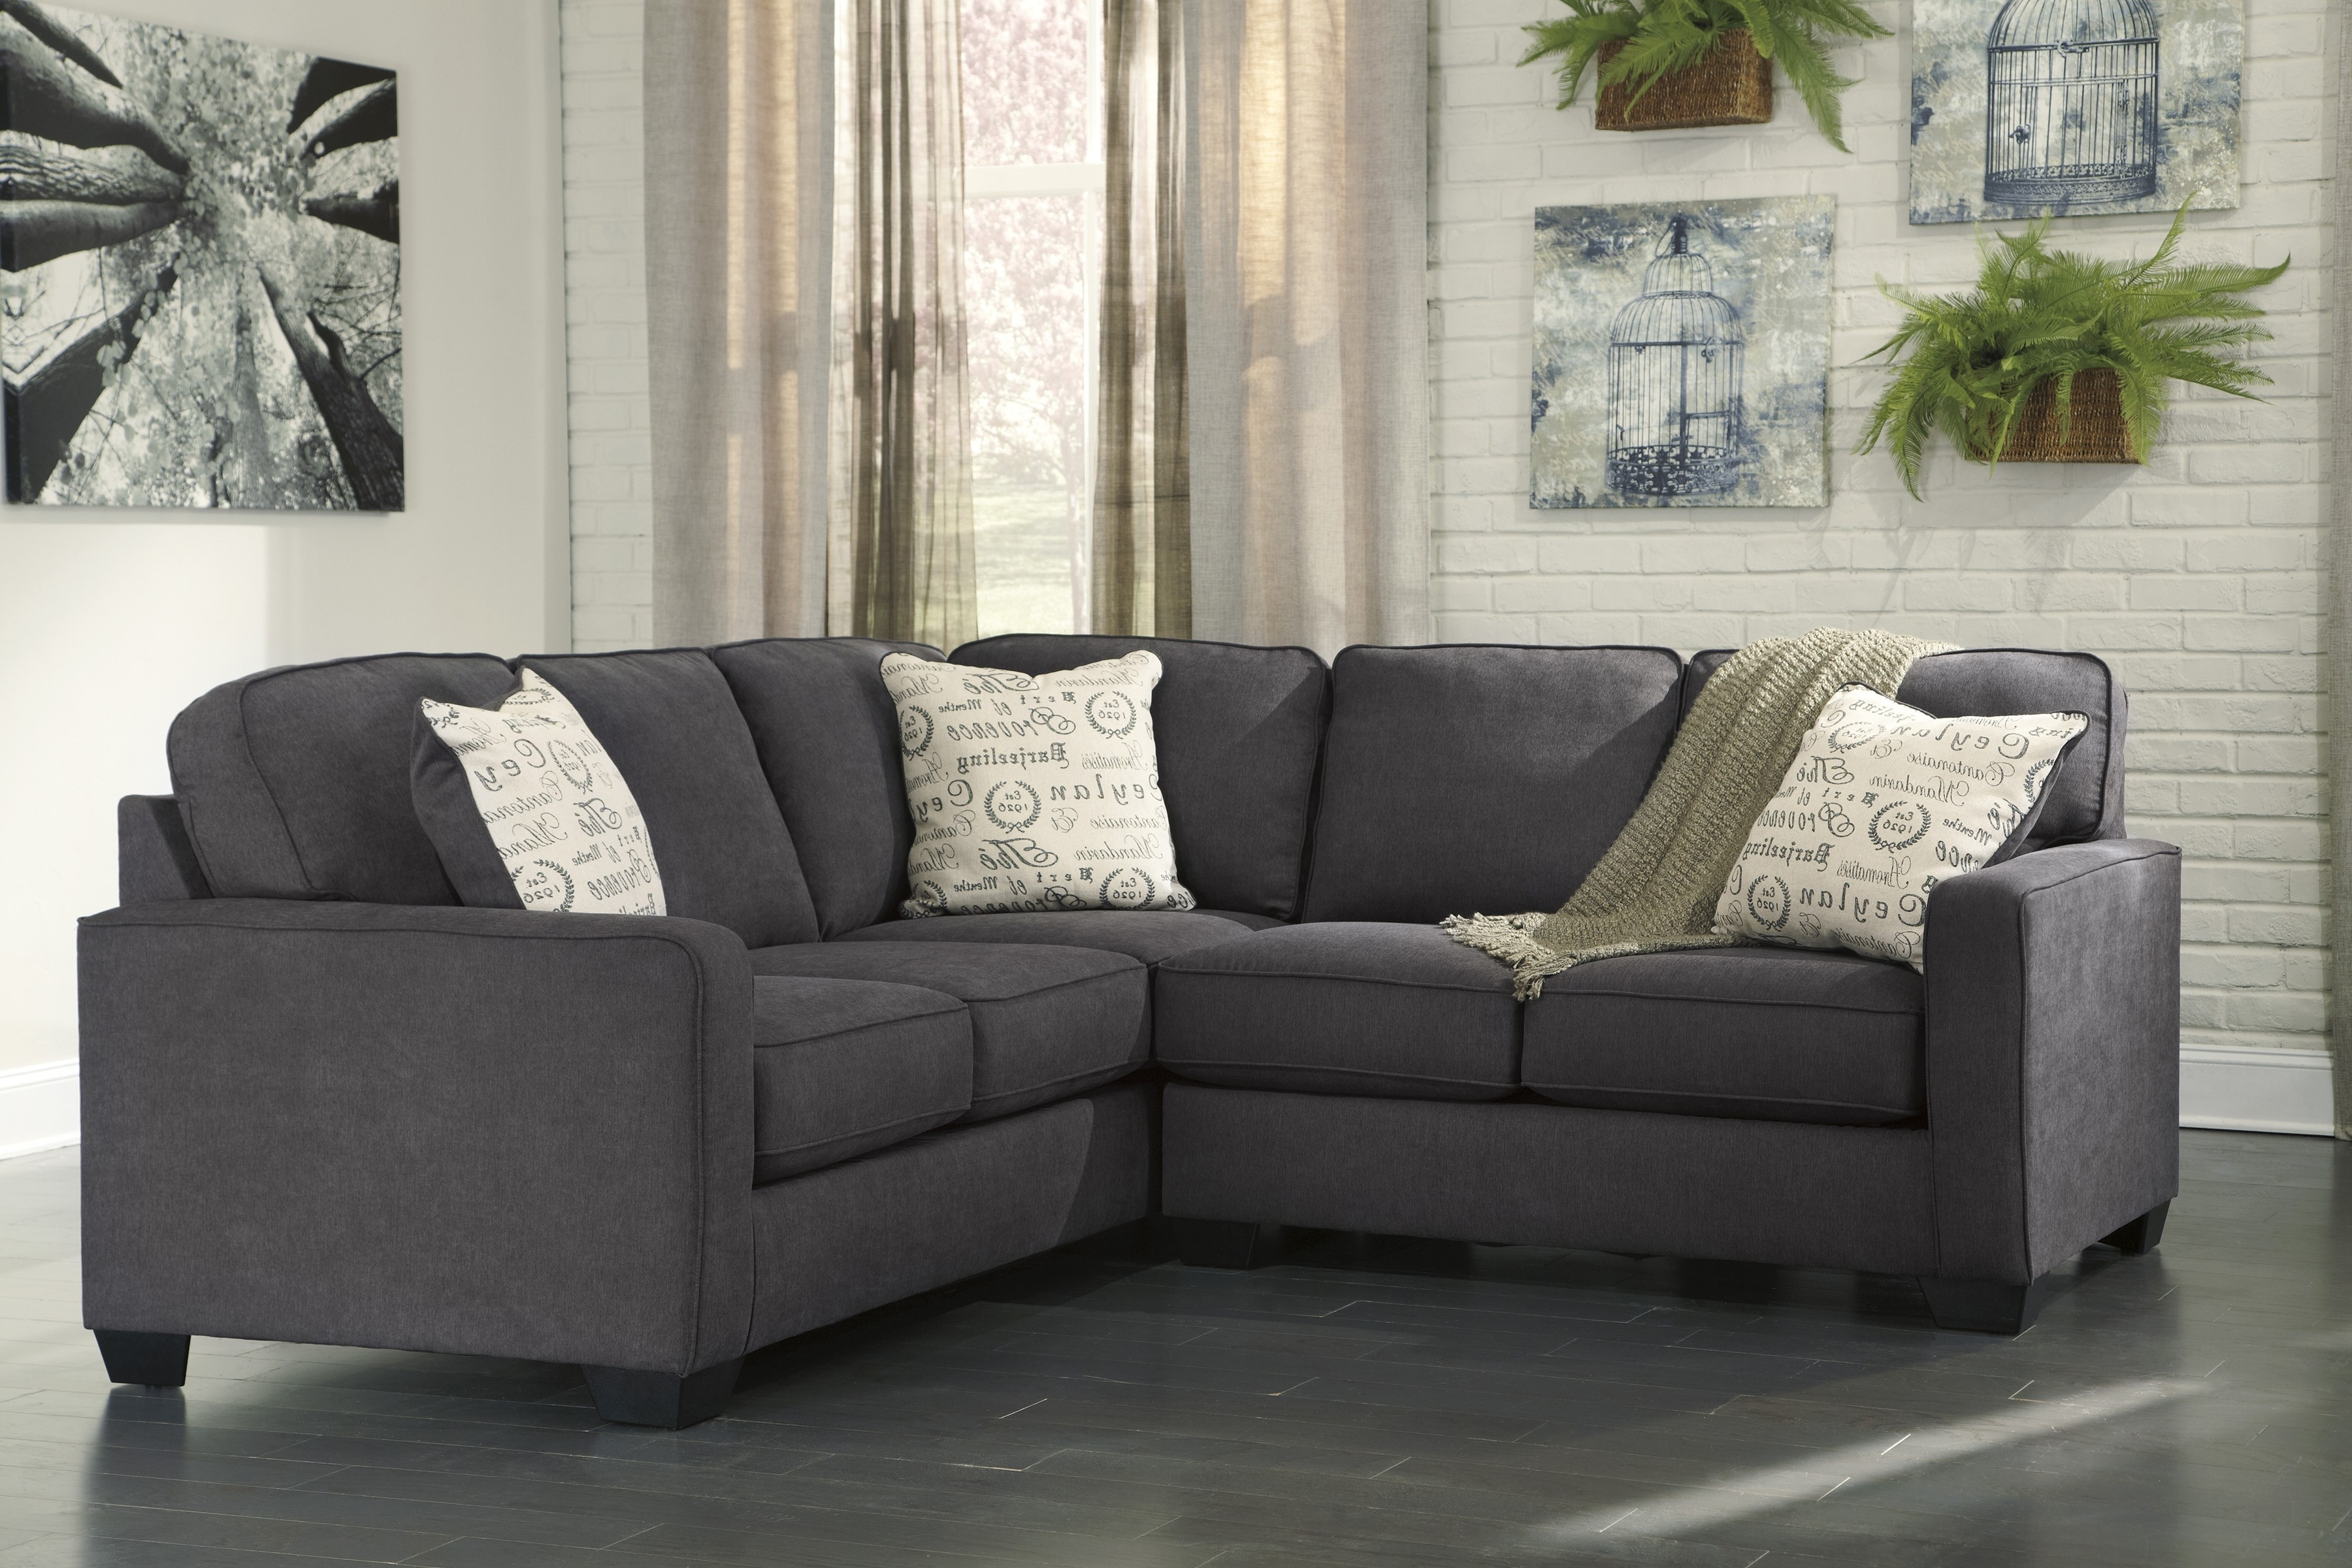 Alenya Charcoal Piece Sectional Sofa For Furnitureusa Raf Love Tures with Tess 2 Piece Power Reclining Sectionals With Laf Chaise (Image 1 of 30)